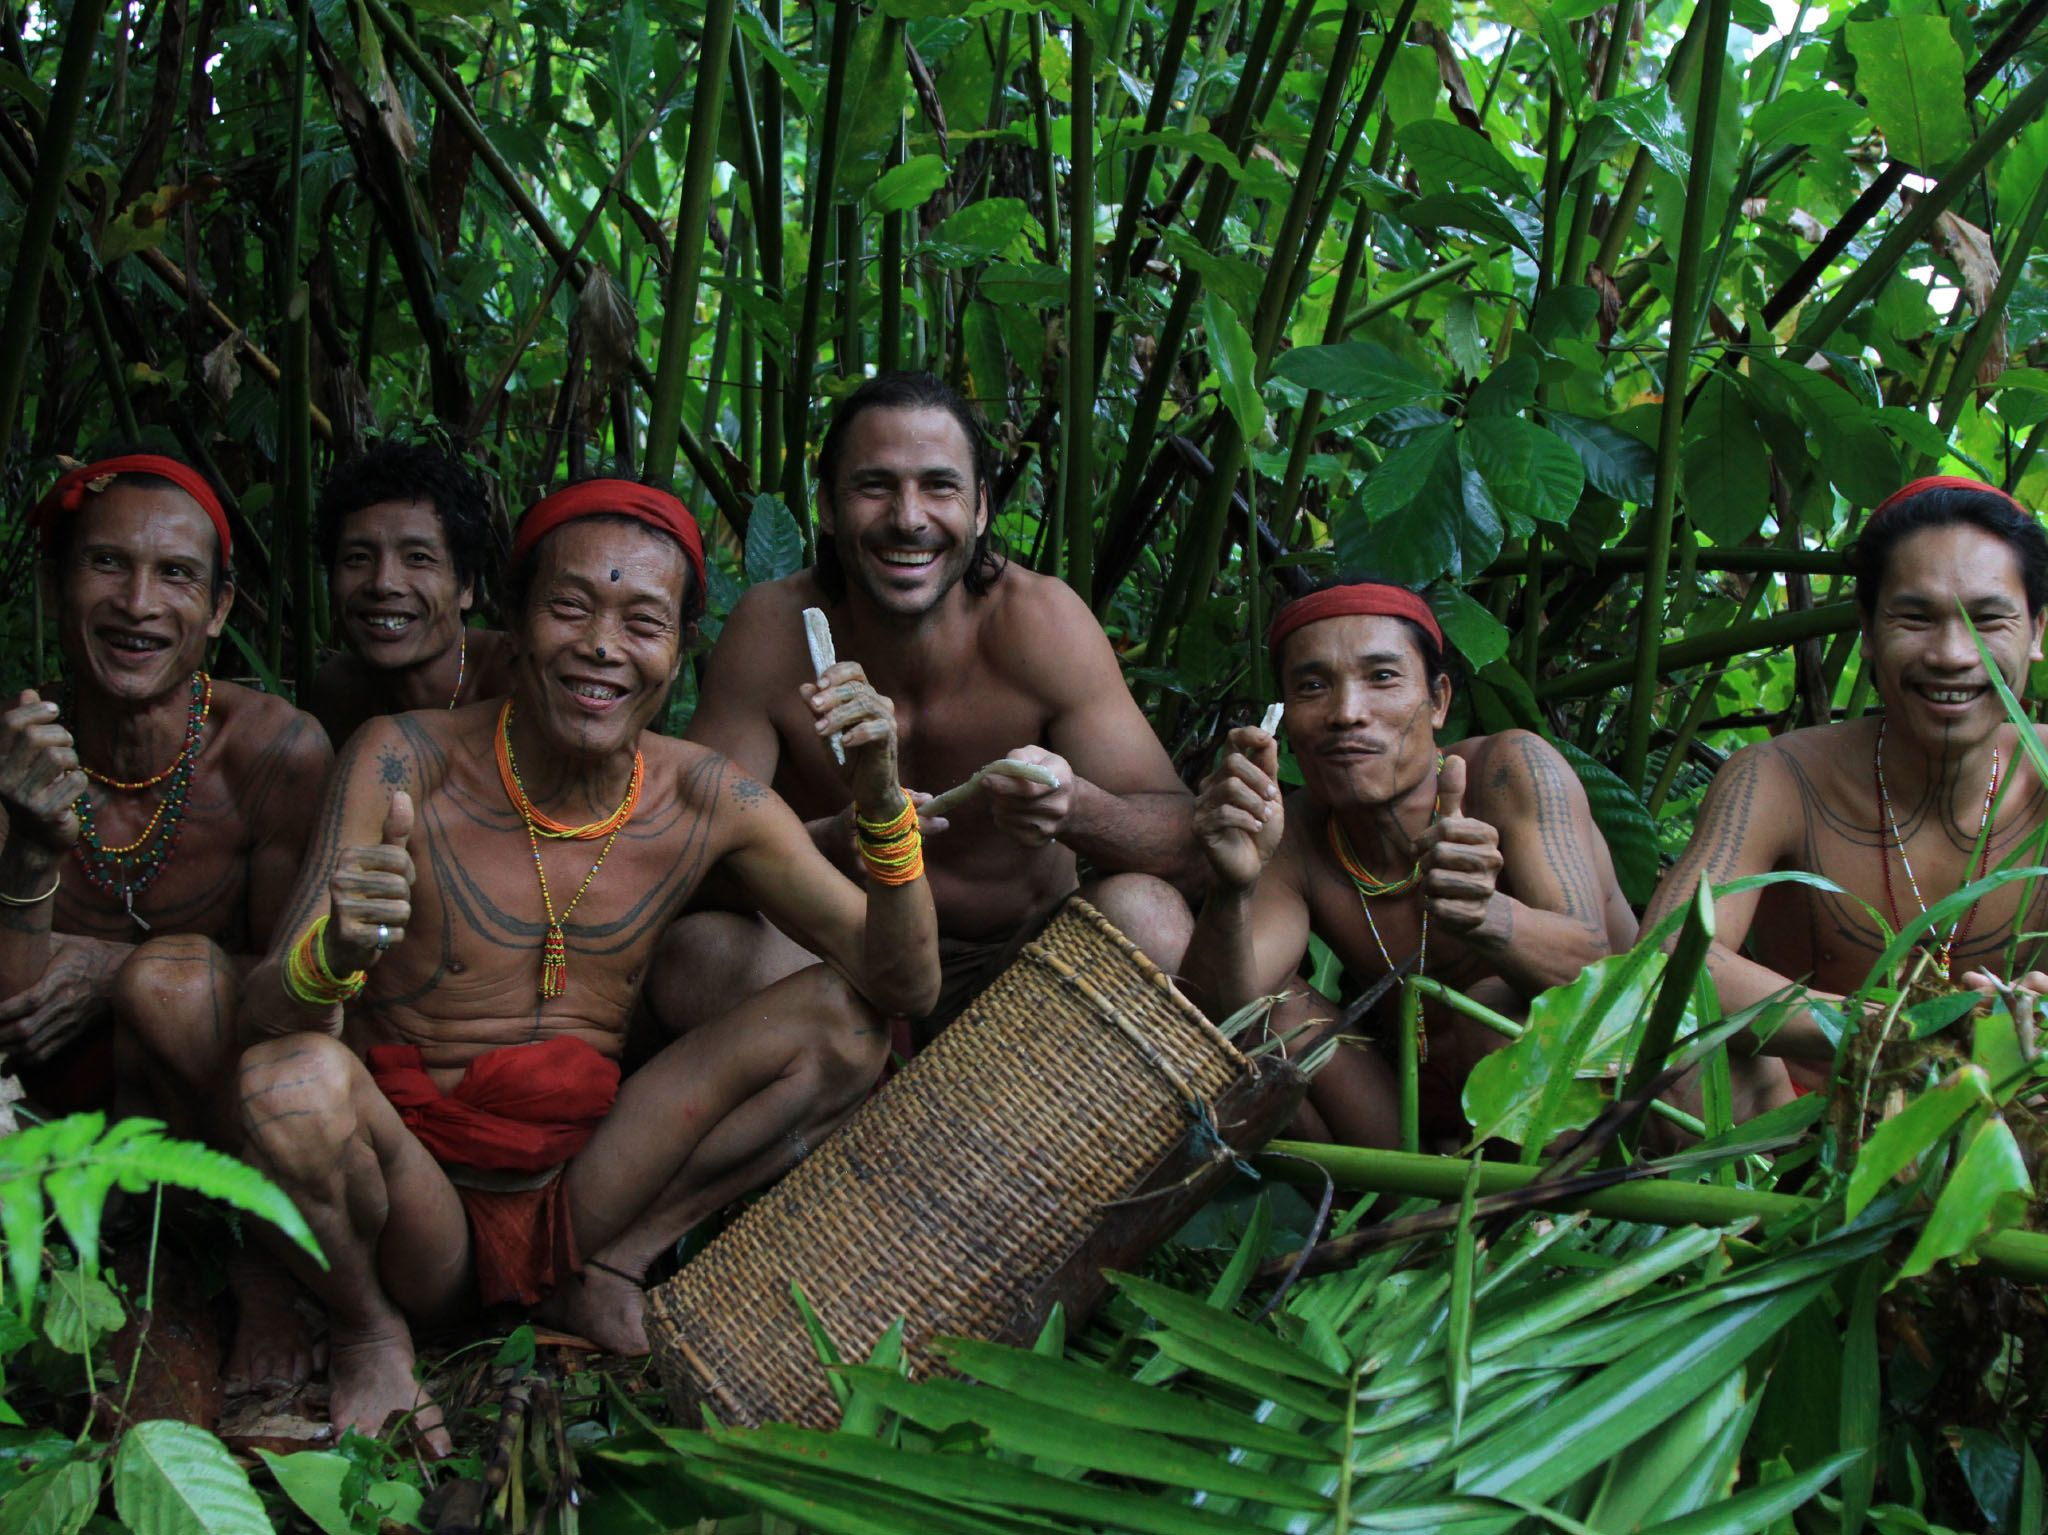 Hazen in forest with the Mentawia tribe. This image is from Primal Survivor. [Photo of the day - April 2021]